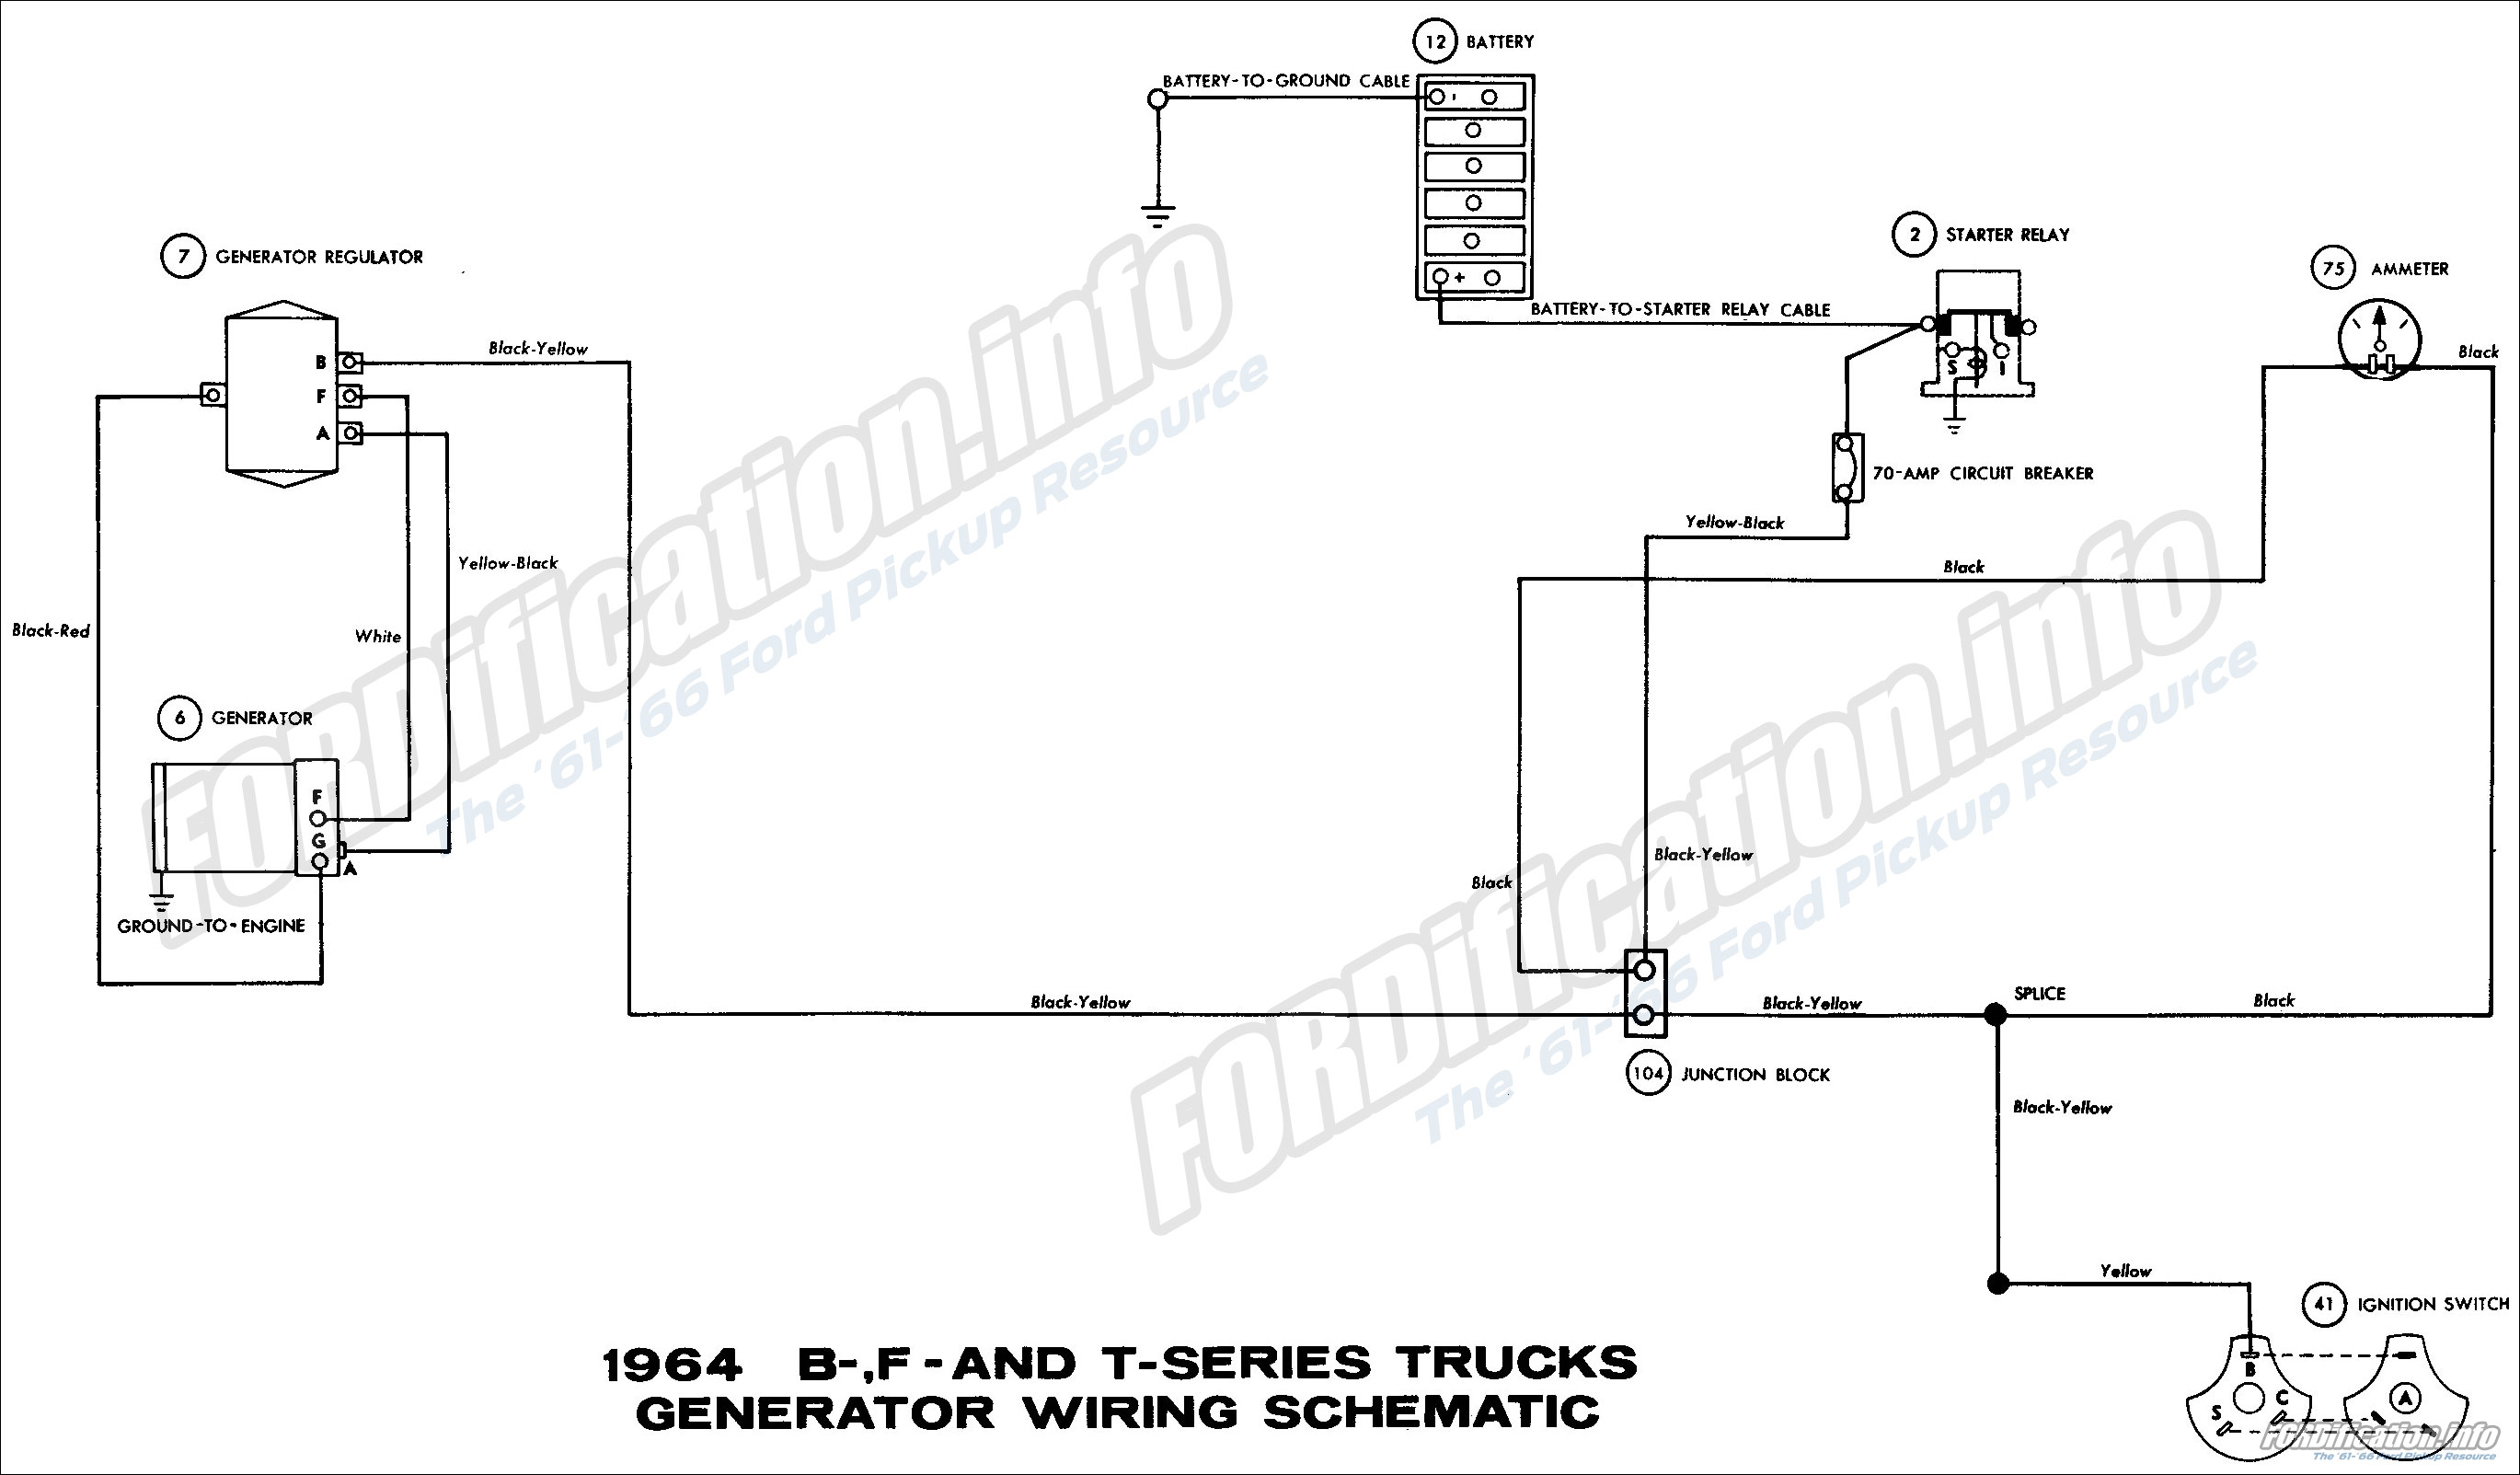 1964 Ford Truck Wiring Diagrams Fordification Info The '61 '66 41 Plymouth  Wiring Diagram 41 Ford Wiring Diagram